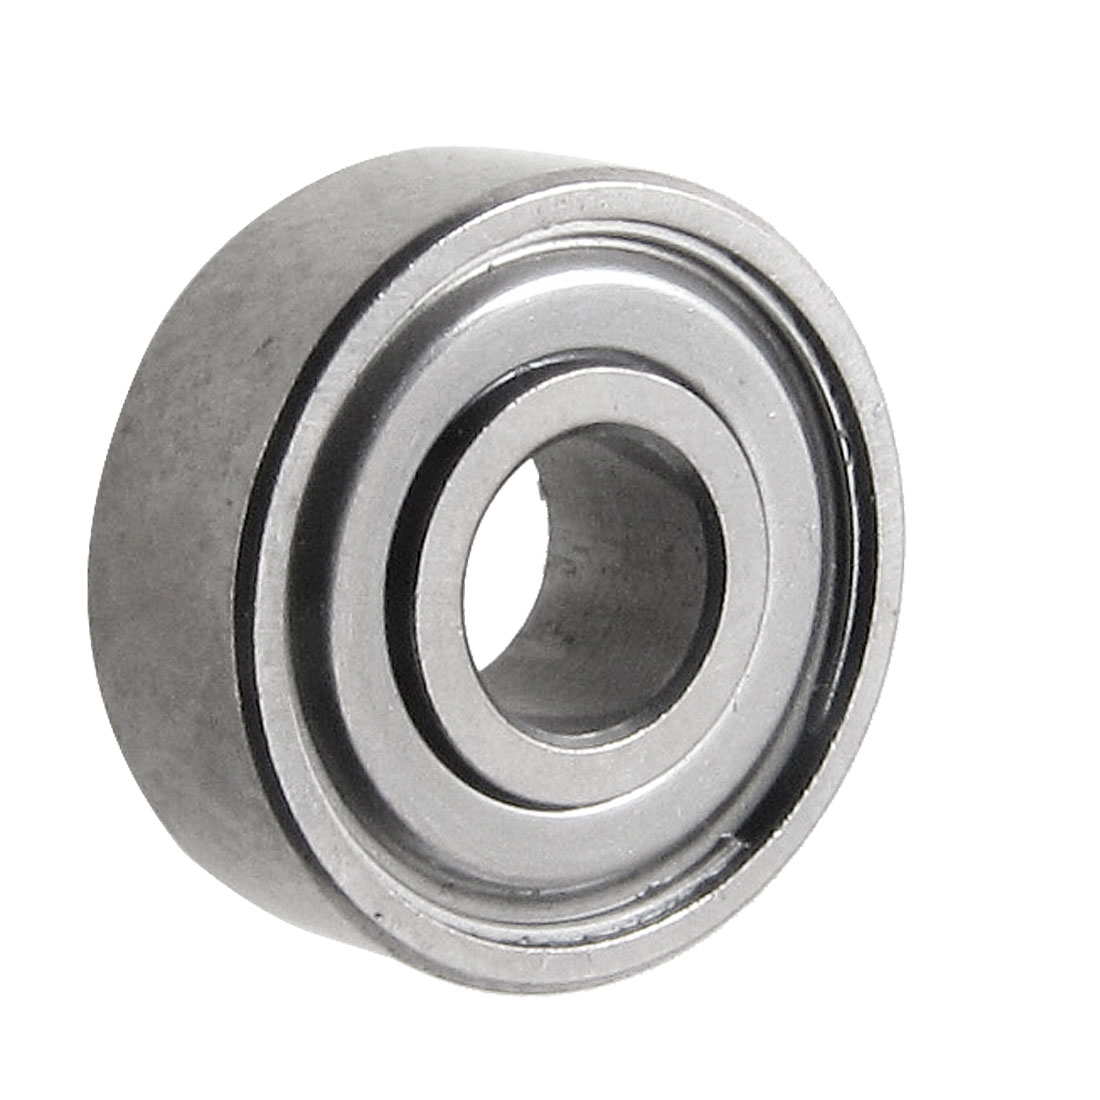 4mm x 11mm x 4mm Shielded Deep Groove Radial Ball Bearing Stainless Steel